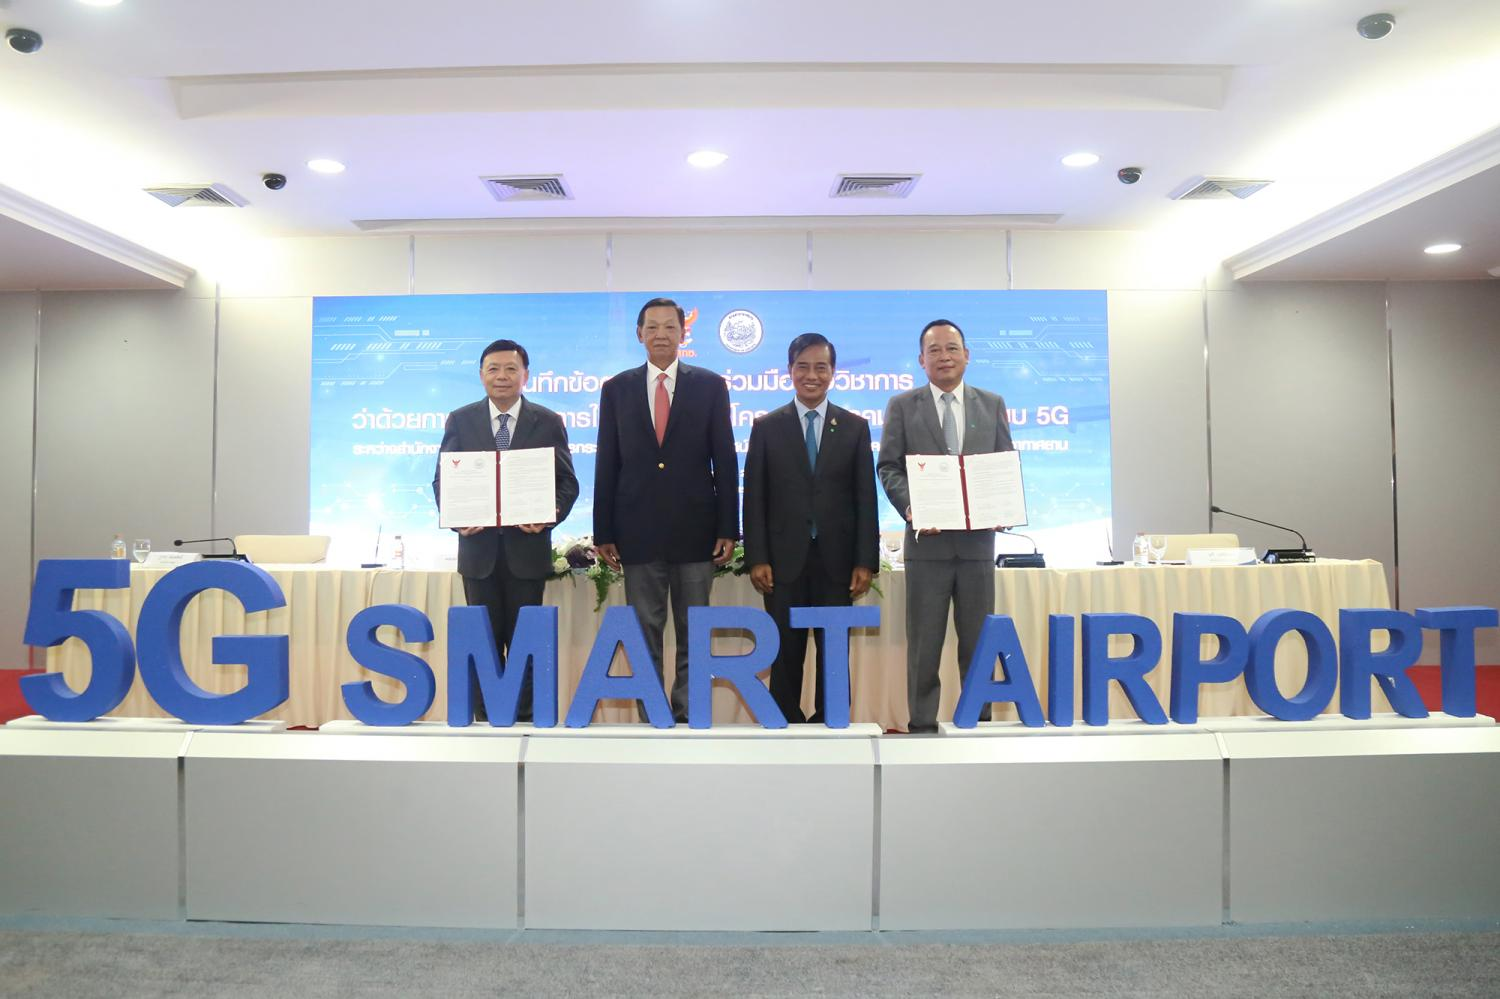 NBTC signs deal with airports to back 5G